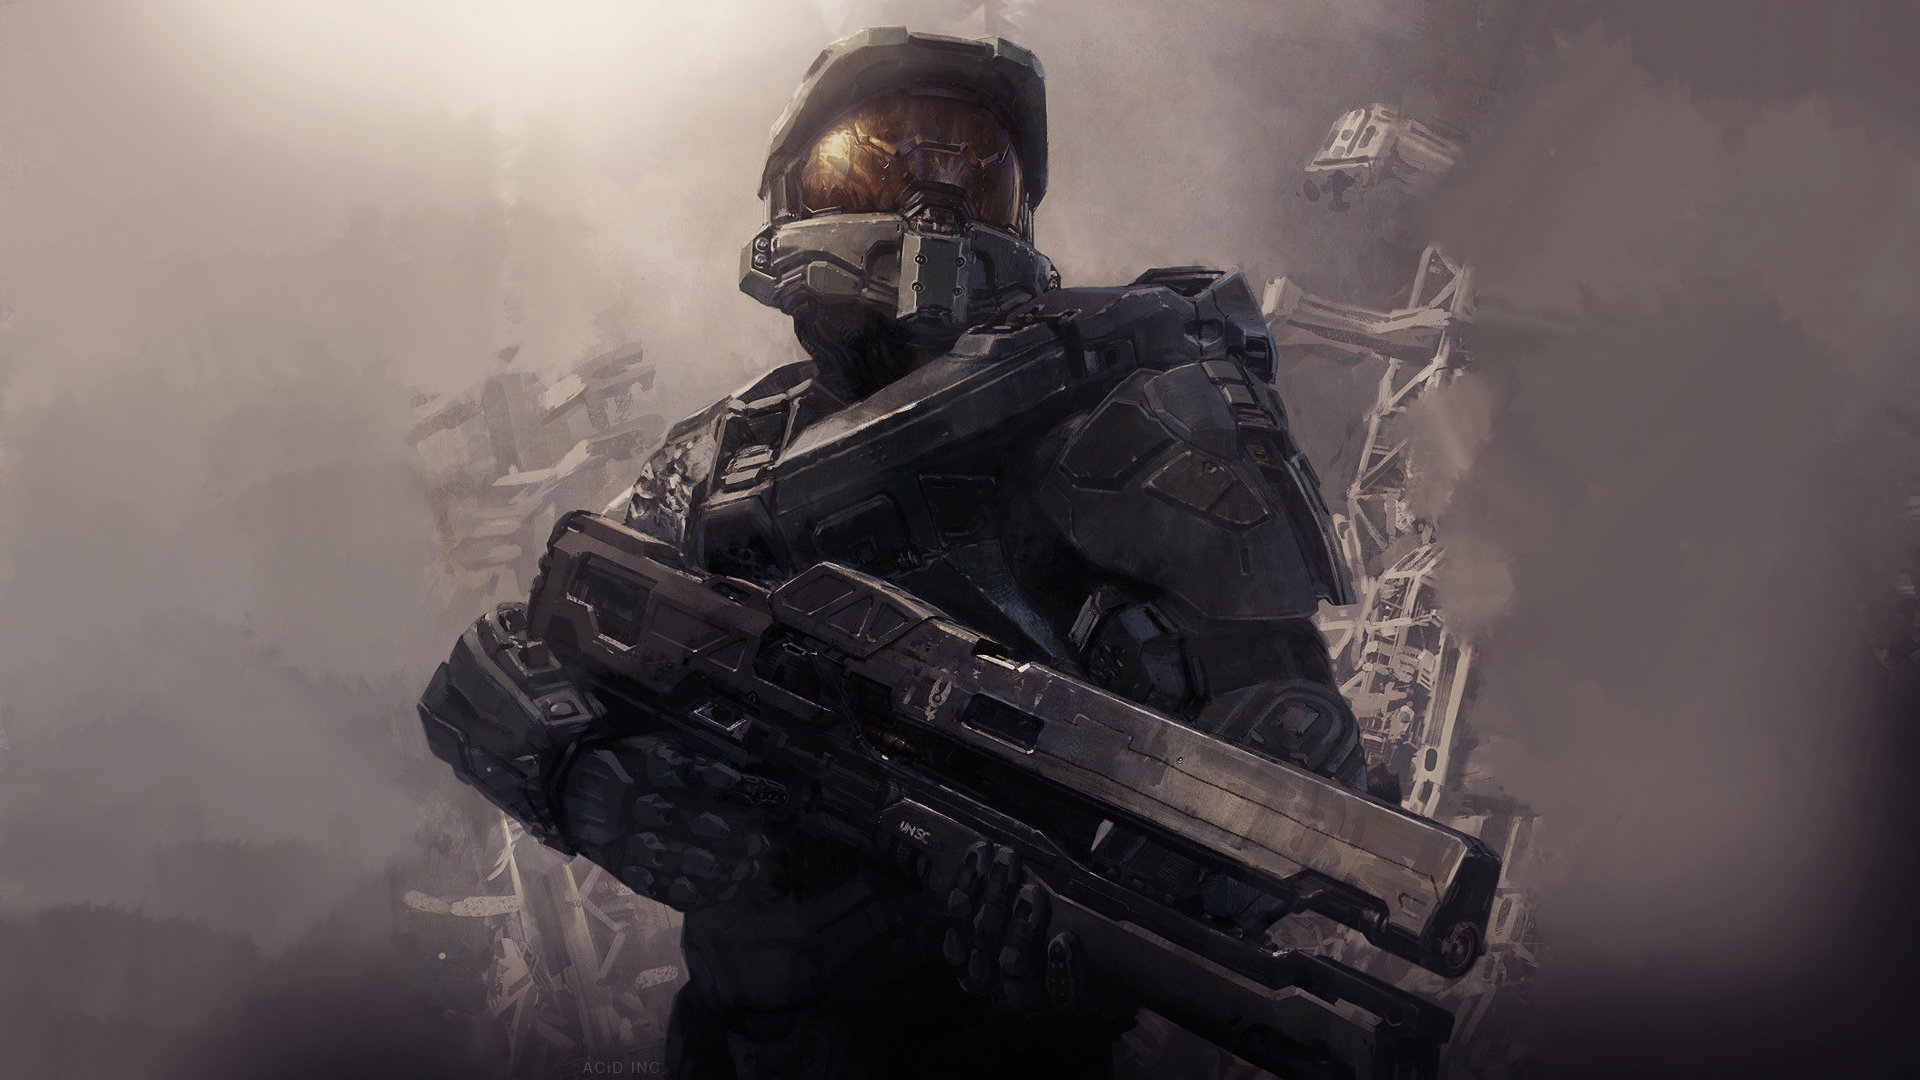 Halo 4 wallpapers hd for desktop backgrounds halo 4 backgrounds hd for desktop voltagebd Image collections